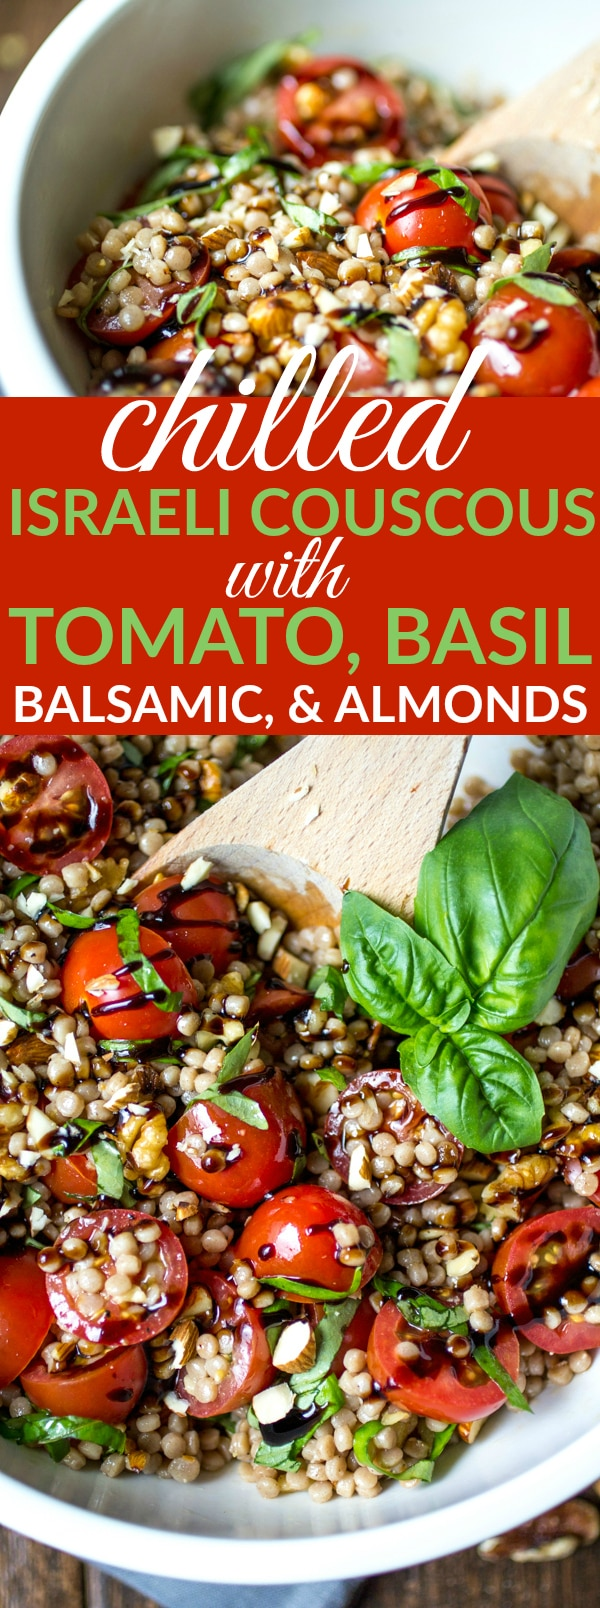 "Whether you call it ""pearl couscous"" or ""Israeli couscous,"" there's everything to love about these little balls of pasta. In this recipe, chilled couscous is coated in a simple olive oil dressing, then tossed with tomatoes, basil, and almonds before being finished with a generous drizzle of balsamic glaze. Healthy and delicious!"